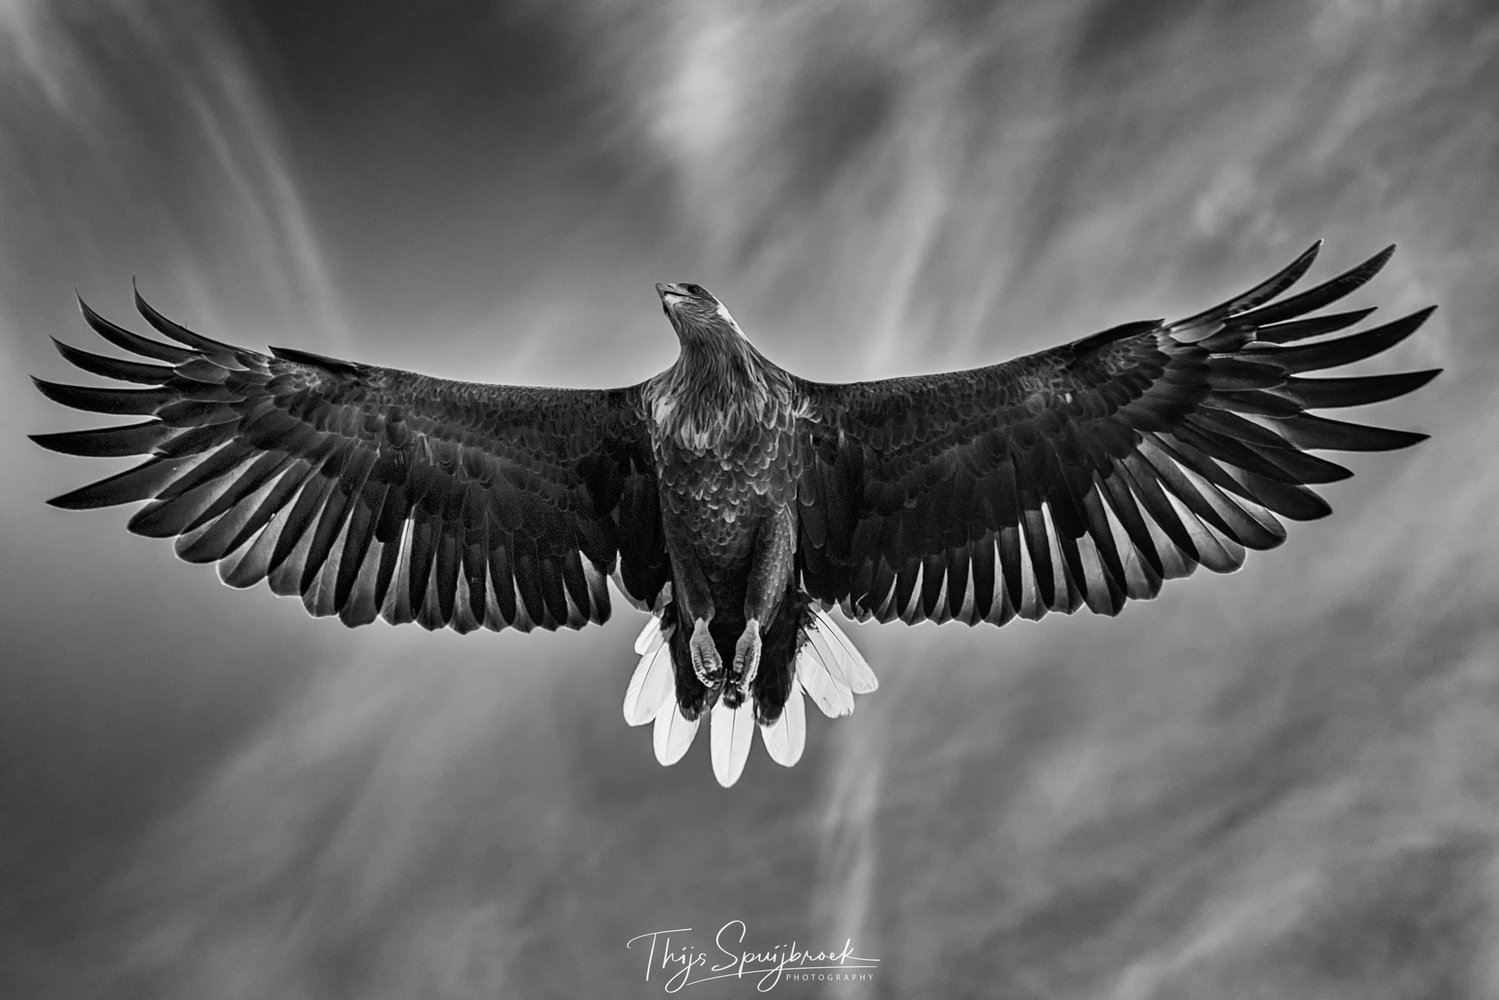 The Sea Eagle by Thijs Spuijbroek